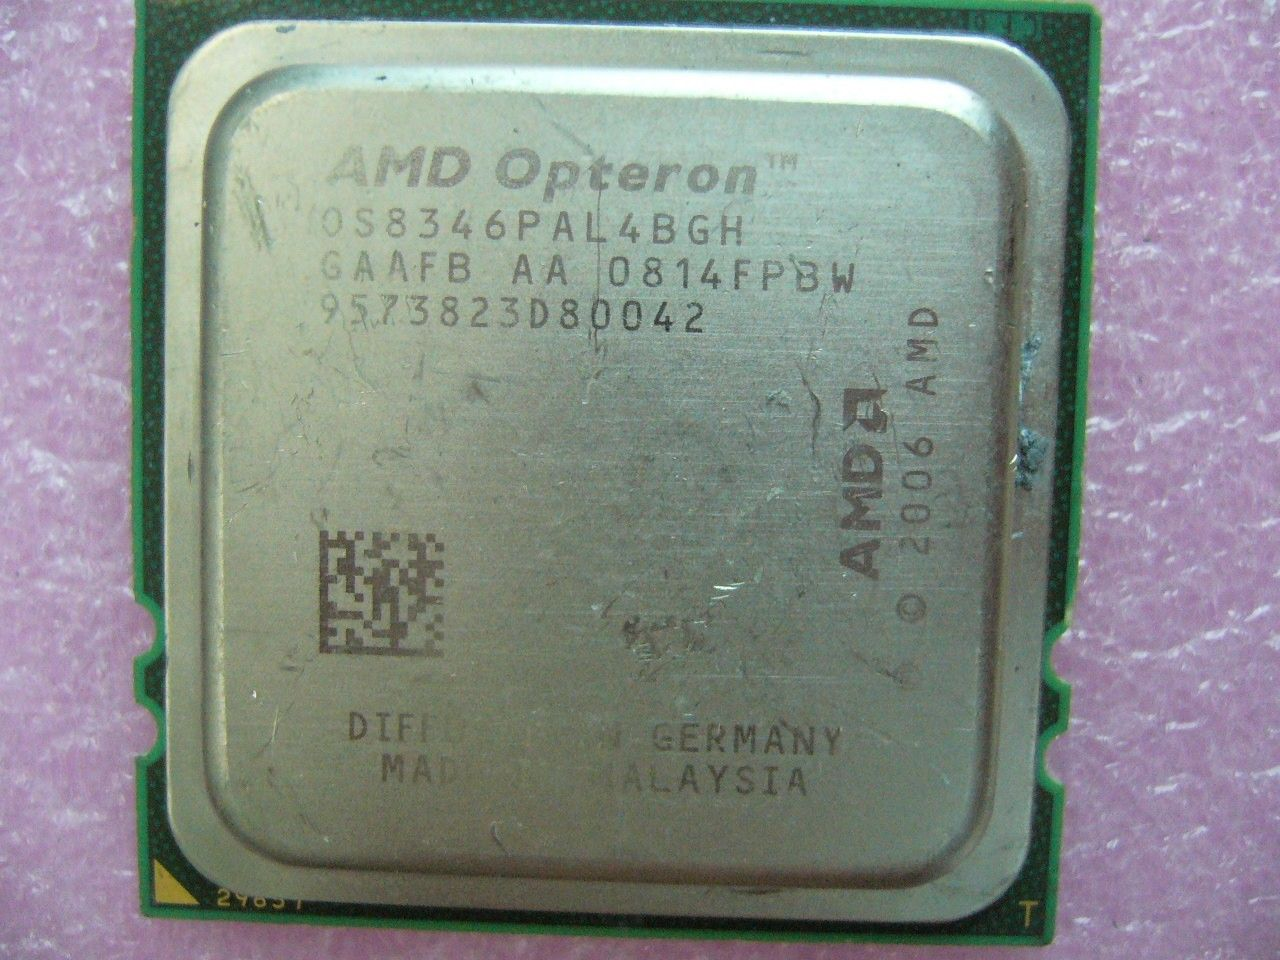 QTY 1x AMD CPU OS8346PAL4BGH Opteron 8346 HE Low-Power 1.8 GHz Quad-Core F 1207